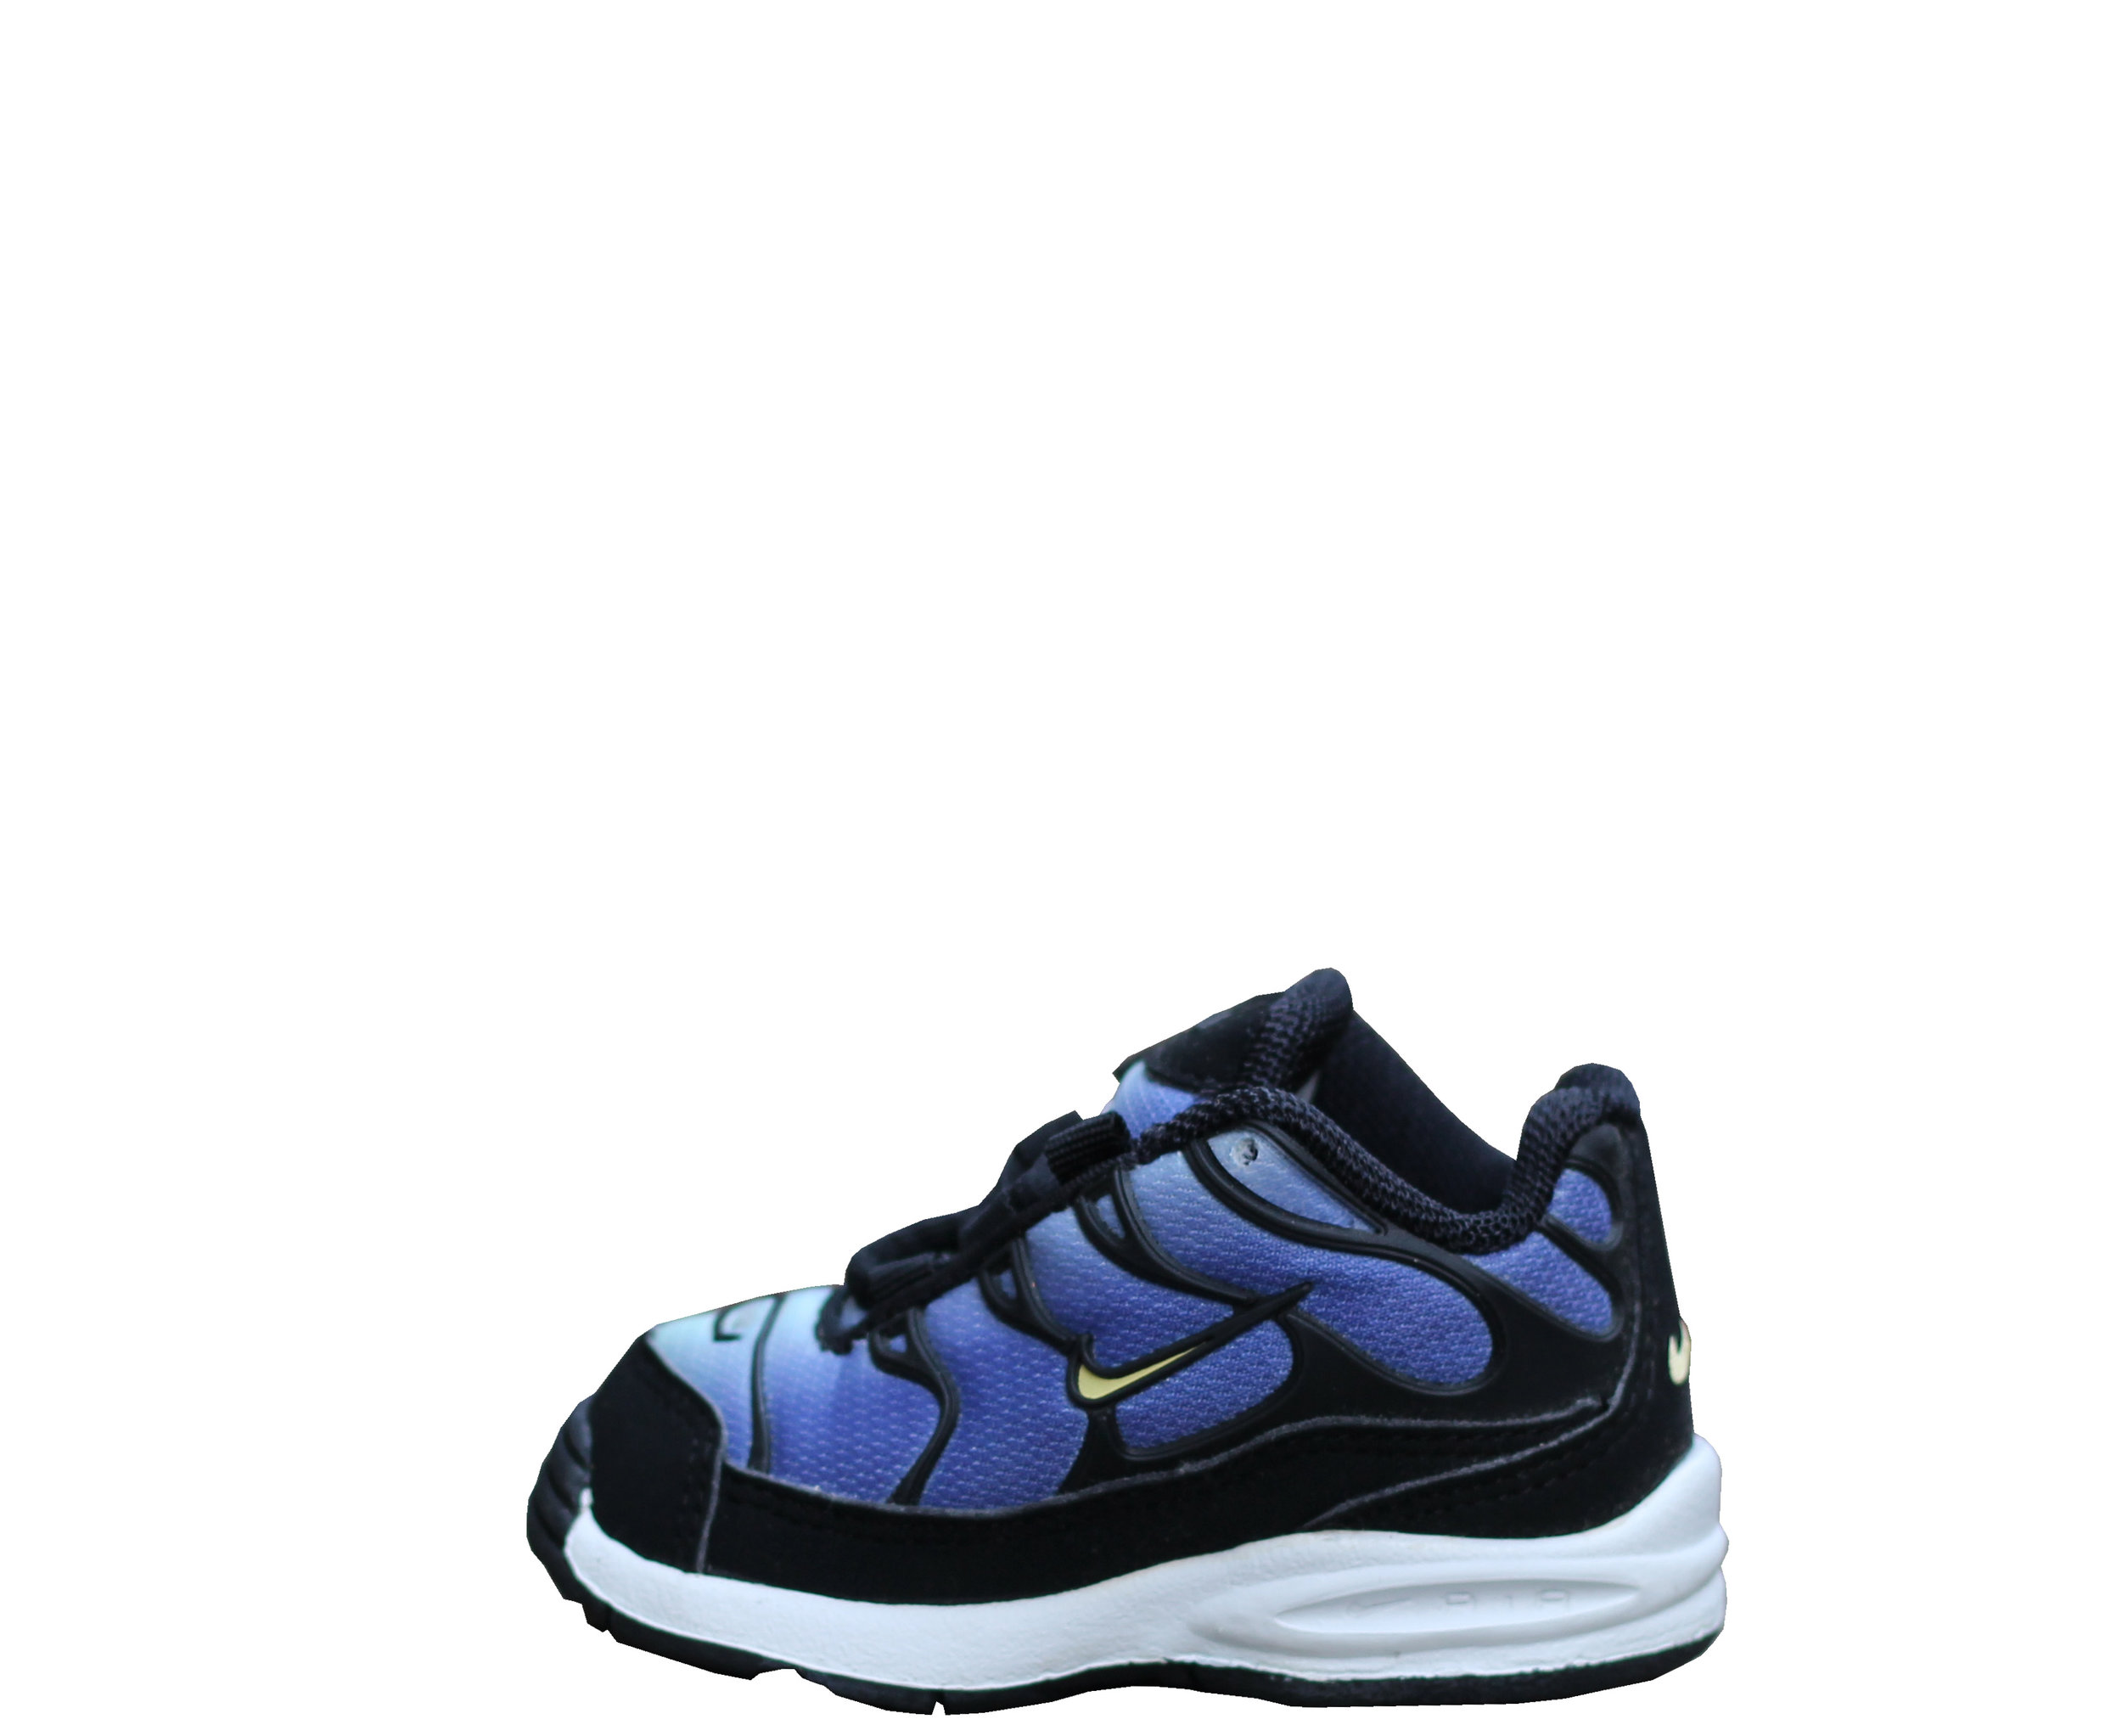 new concept 74964 e562d Baby Nike Air Max Plus Hyper Blue (Size 5) DS — Roots